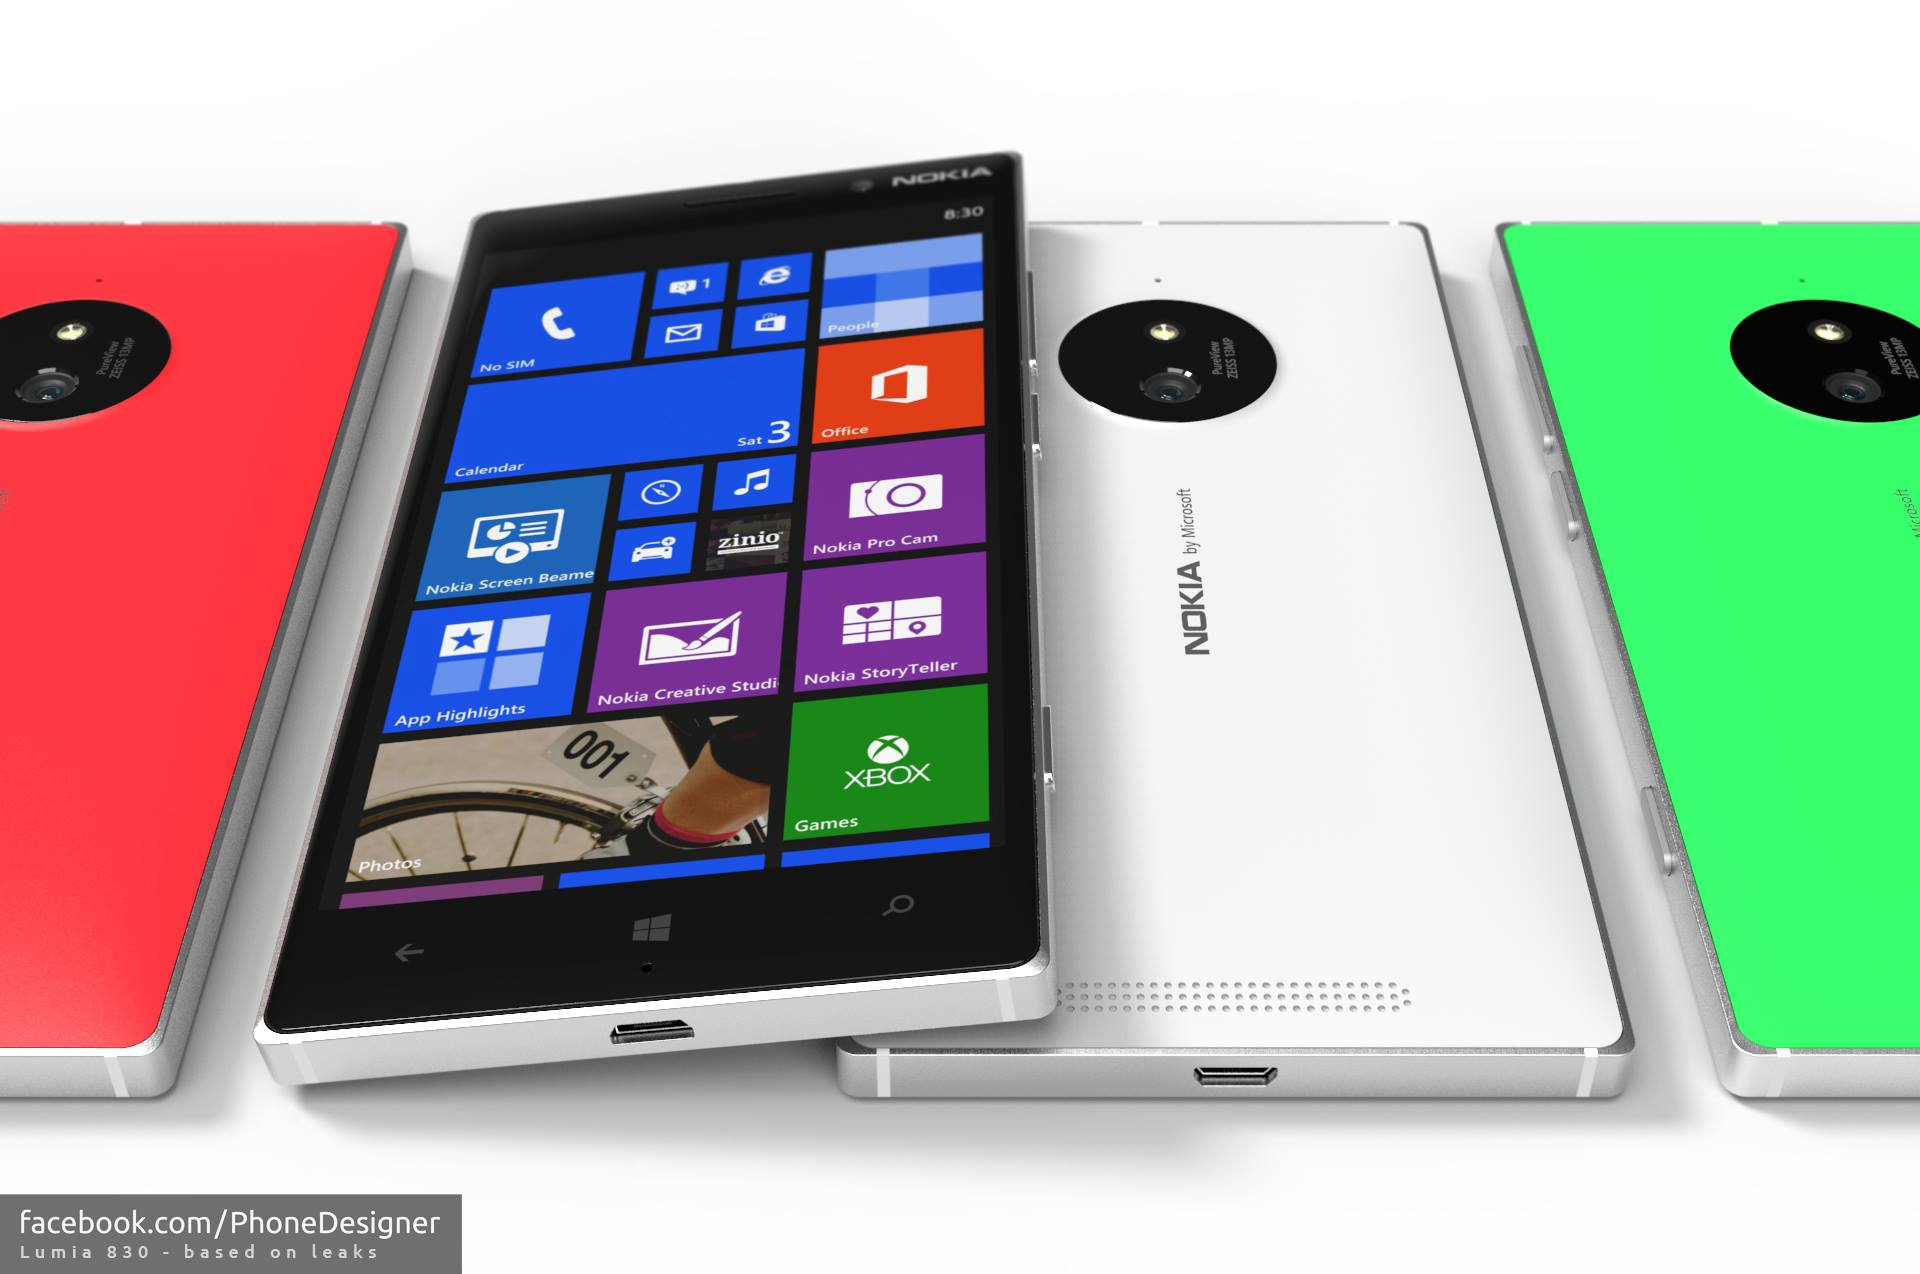 PhoneDesigner Lumia 830 Renderings